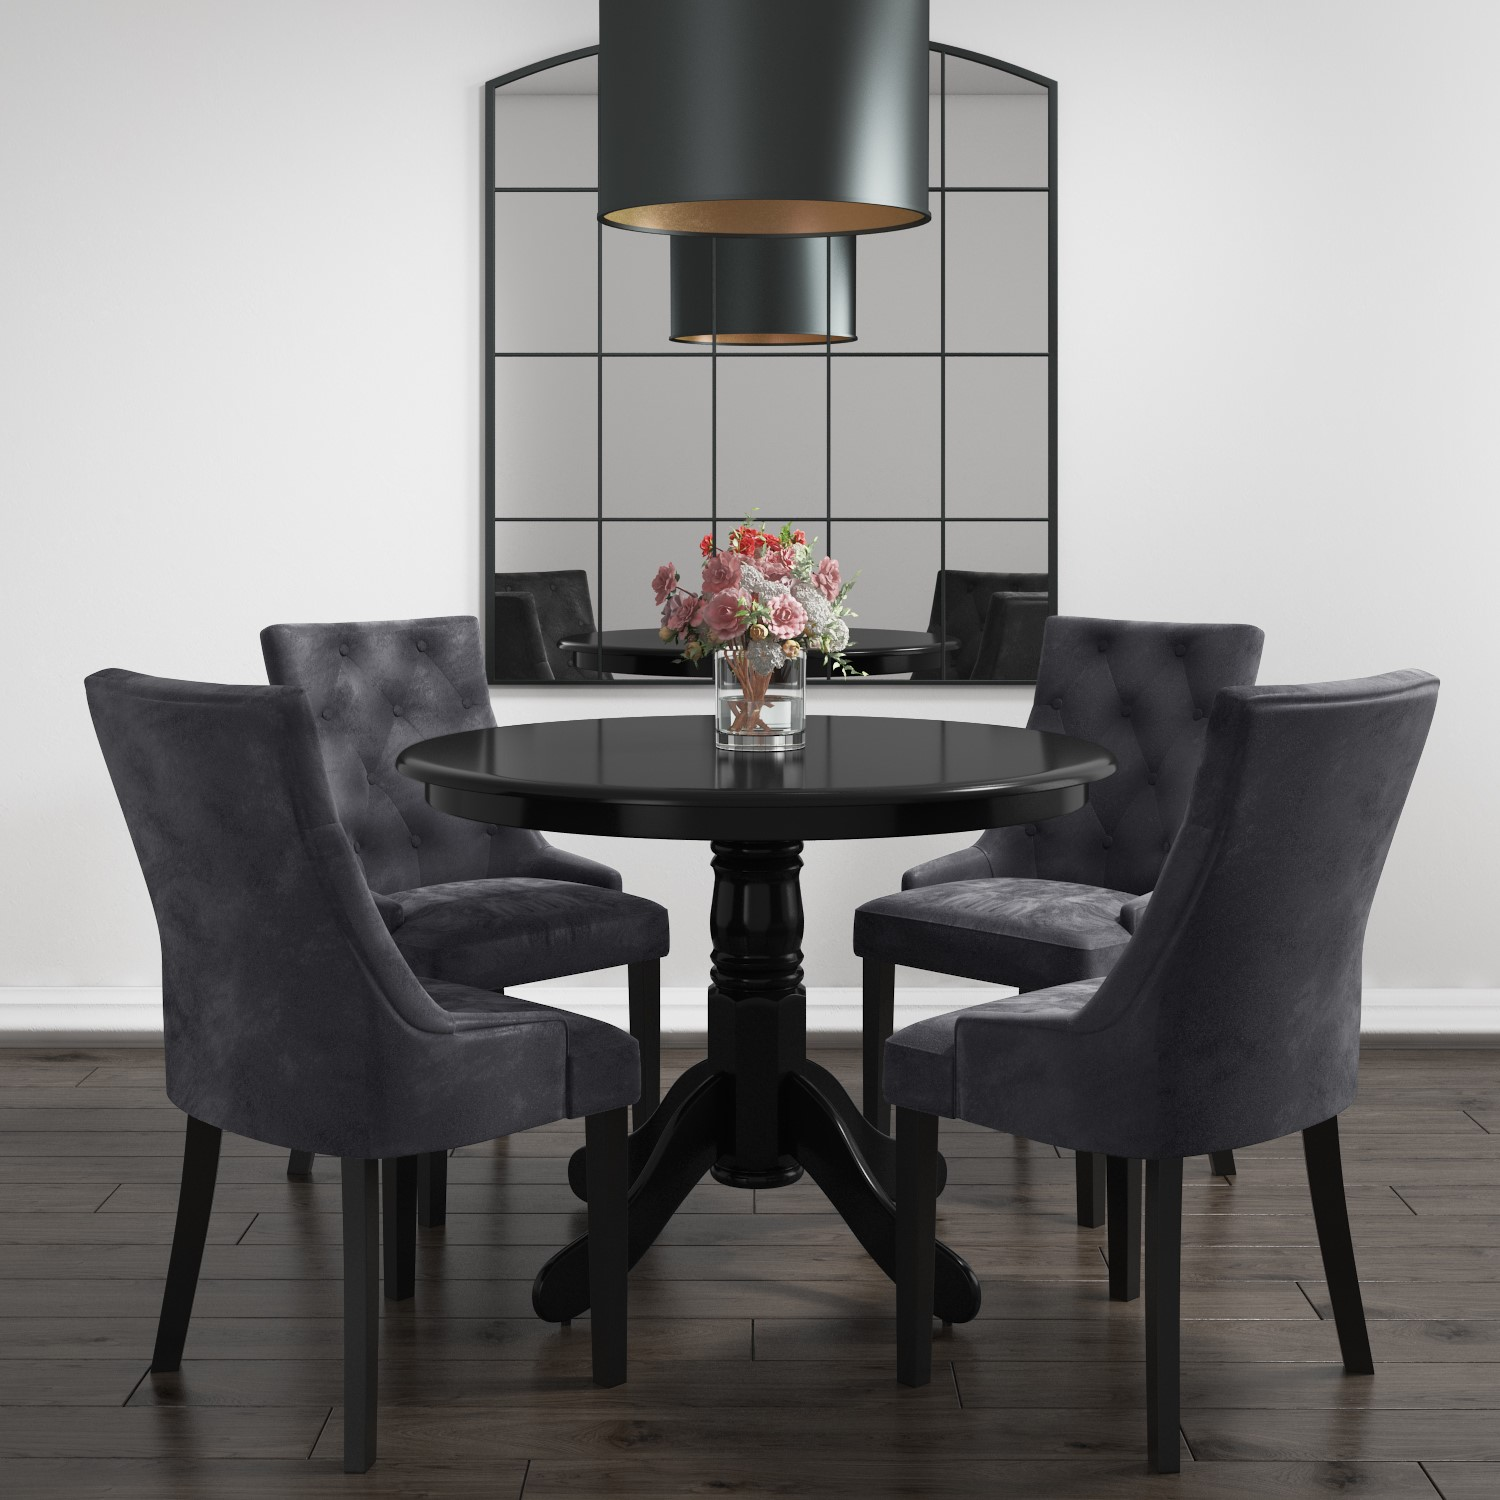 Small Round Dining Table In Black With 4 Velvet Chairs In Grey Rhode Island Kaylee Furniture123